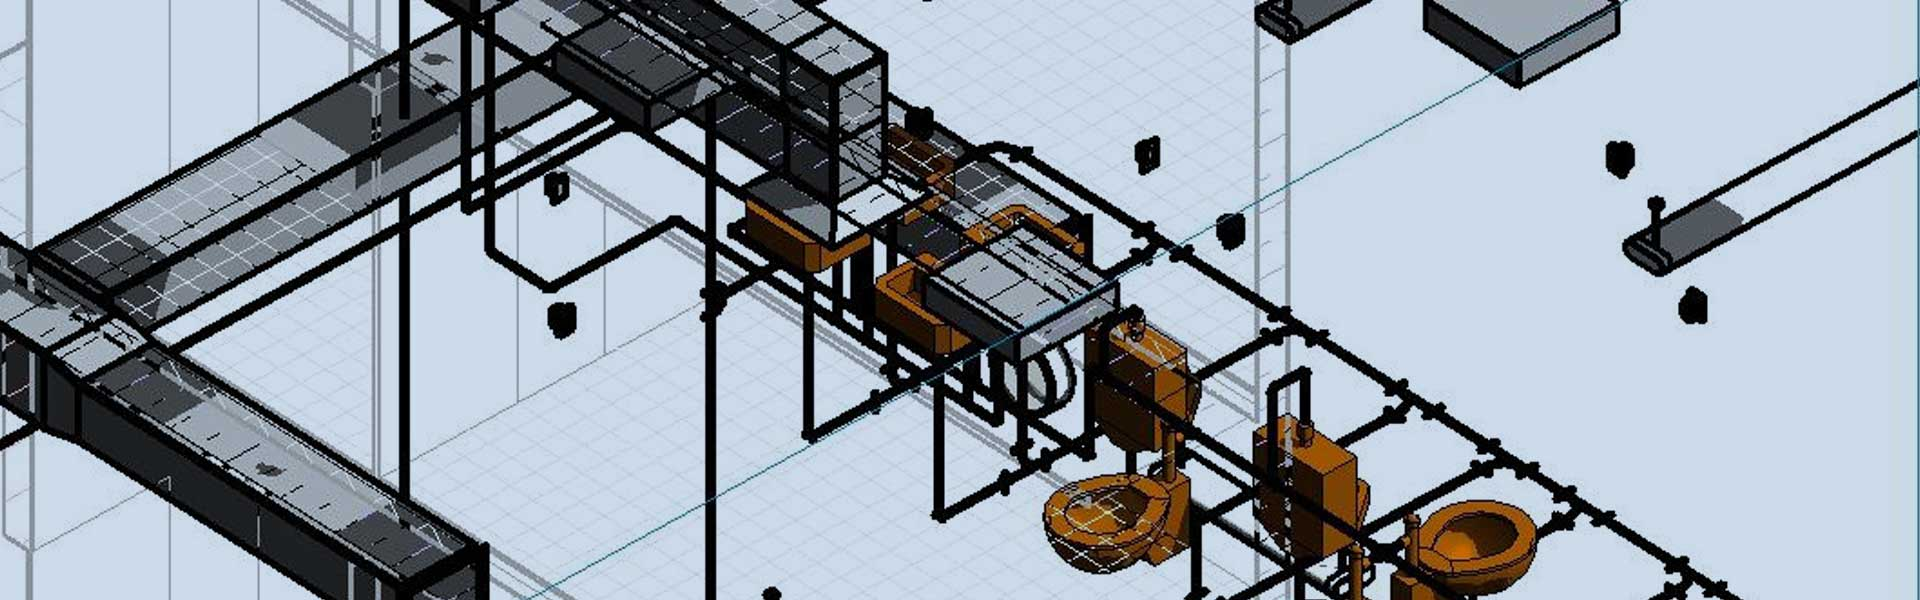 Cad Design Autocad Mechanical Engineering Cedar Rapids Drawing Hvac Systems Using Mep Build Software Iowa City Dubuque